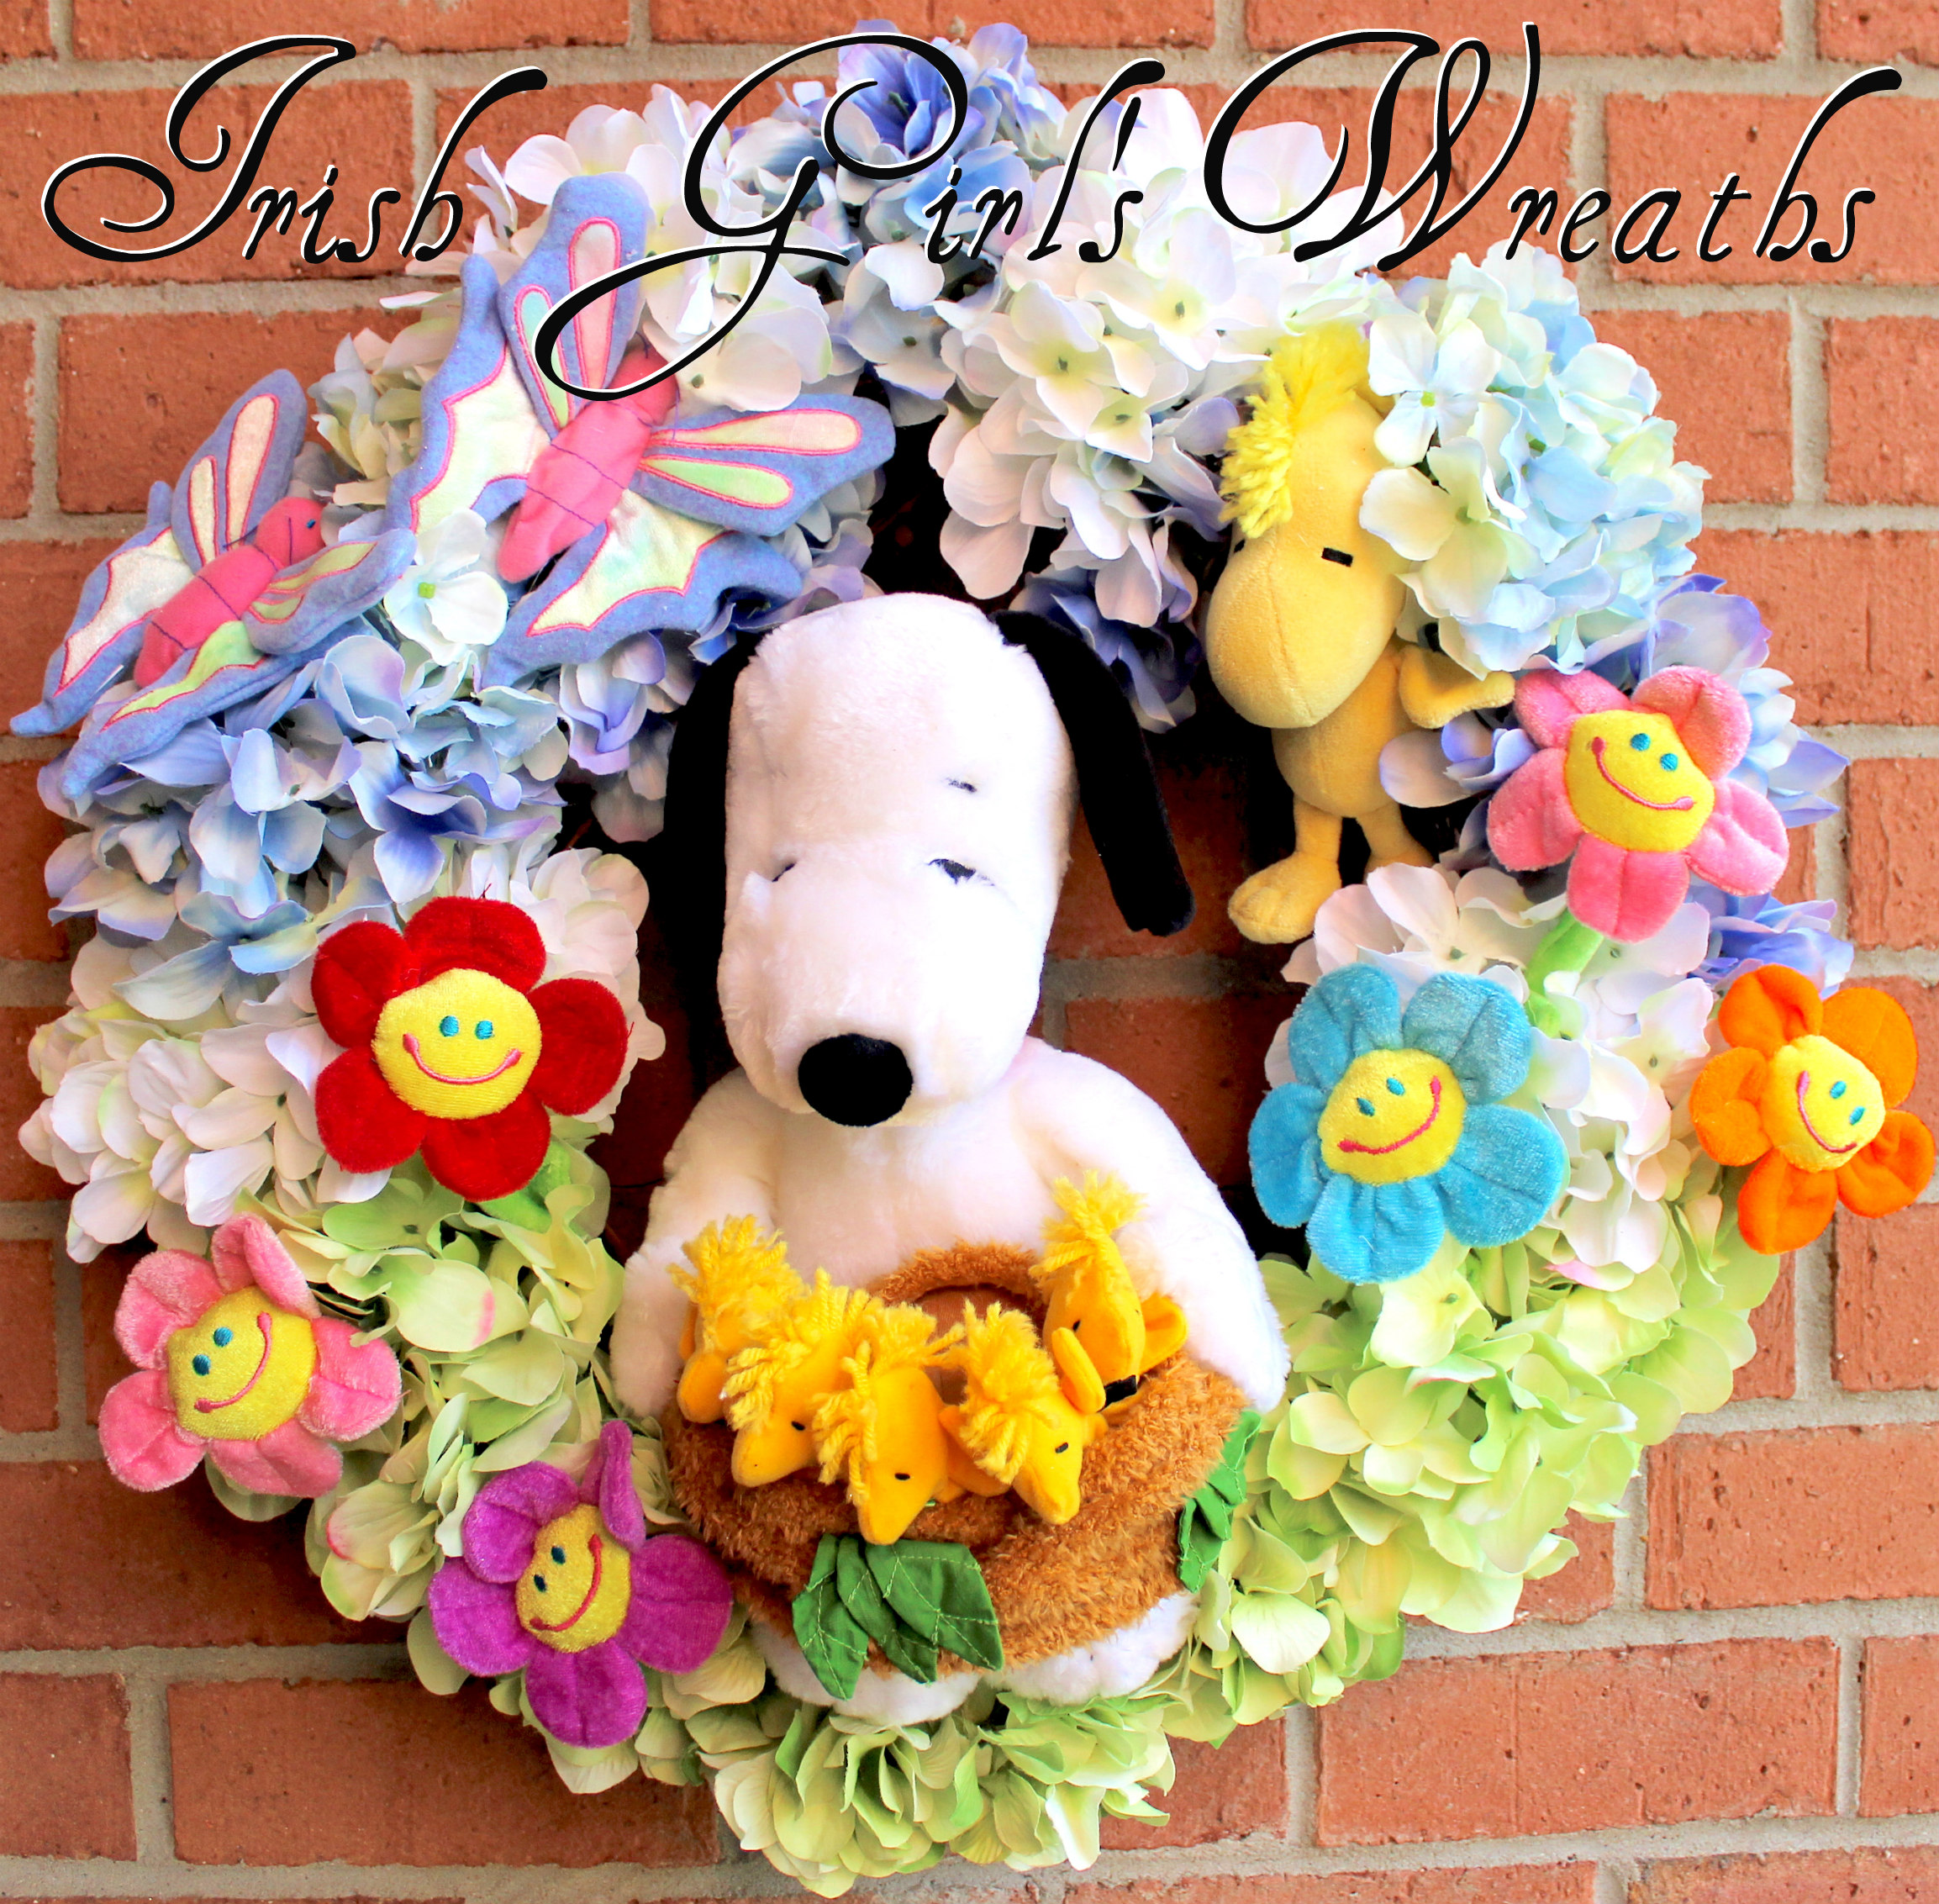 Springtime Snoopy and Proud Papa Woodstock Wreath, custom for Jessica